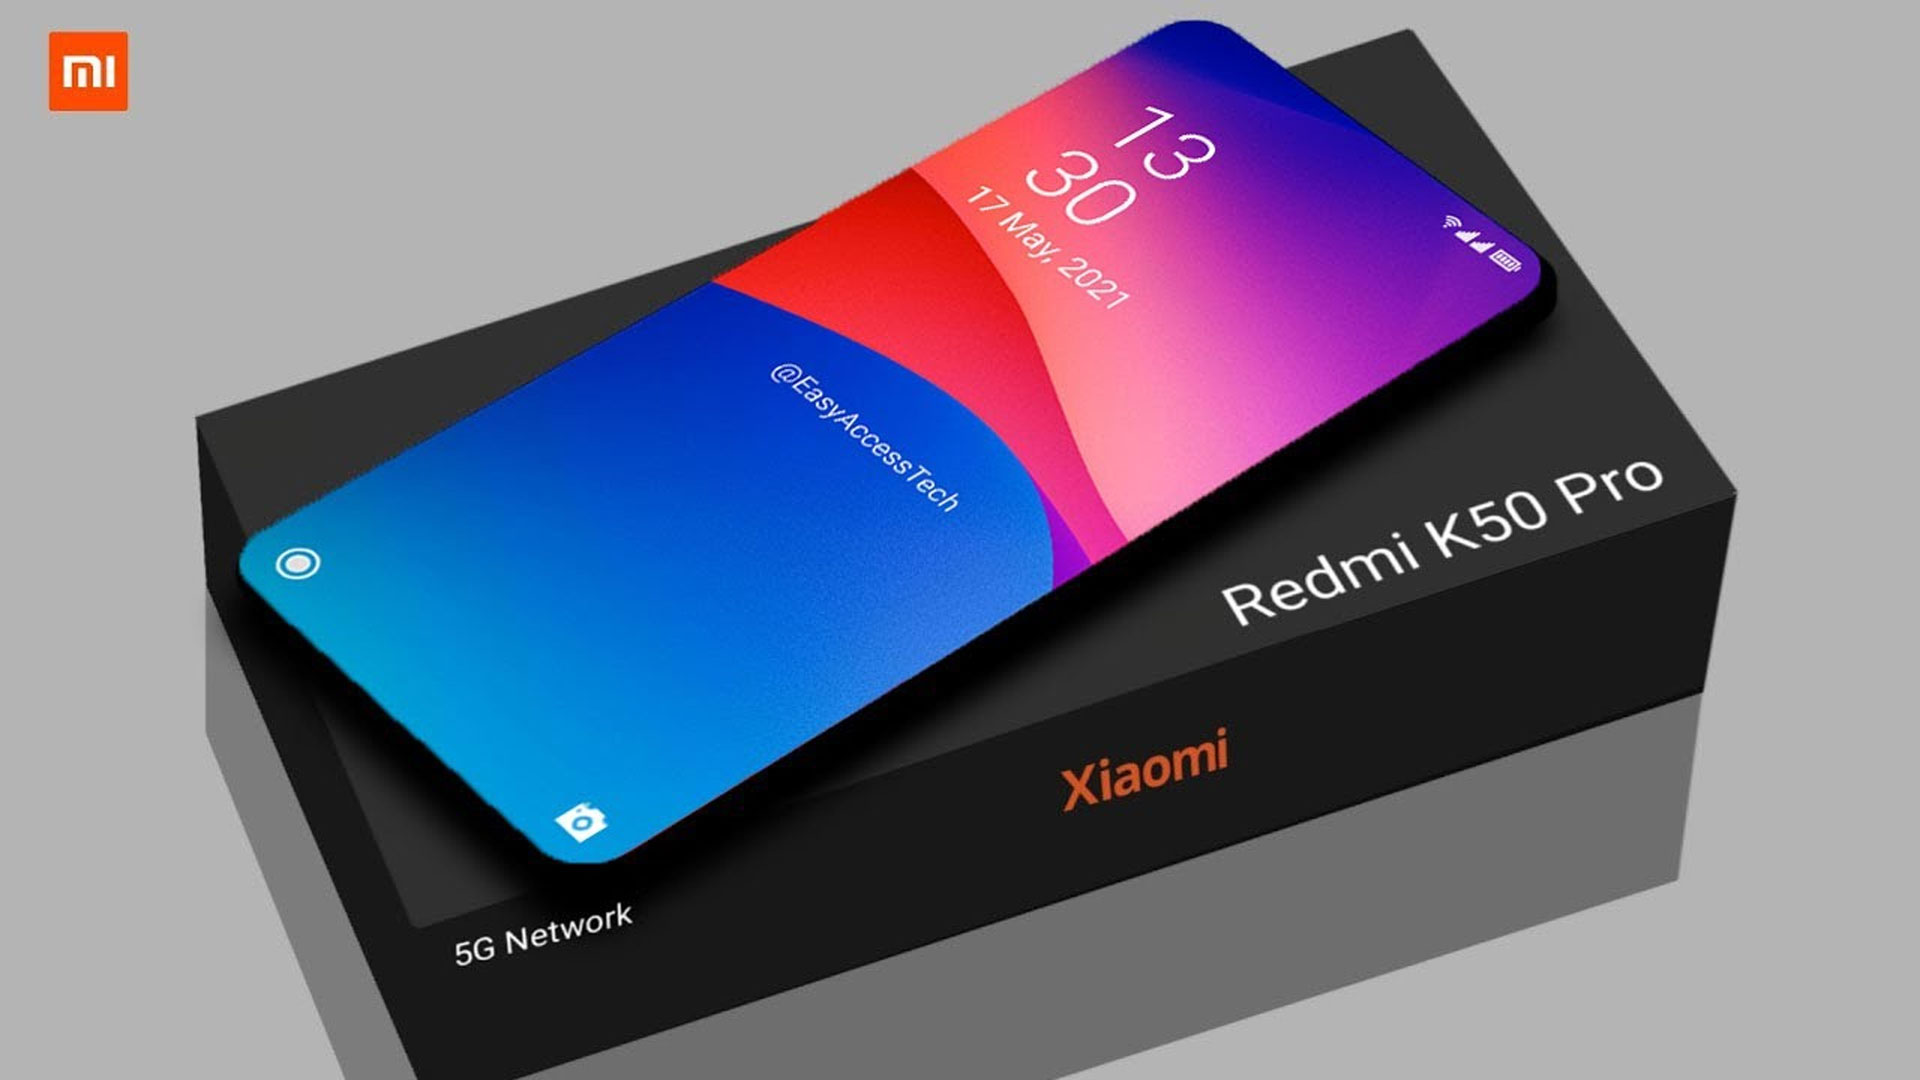 Redmi K50 Pro: all about technical data, price and release - GizChina.it